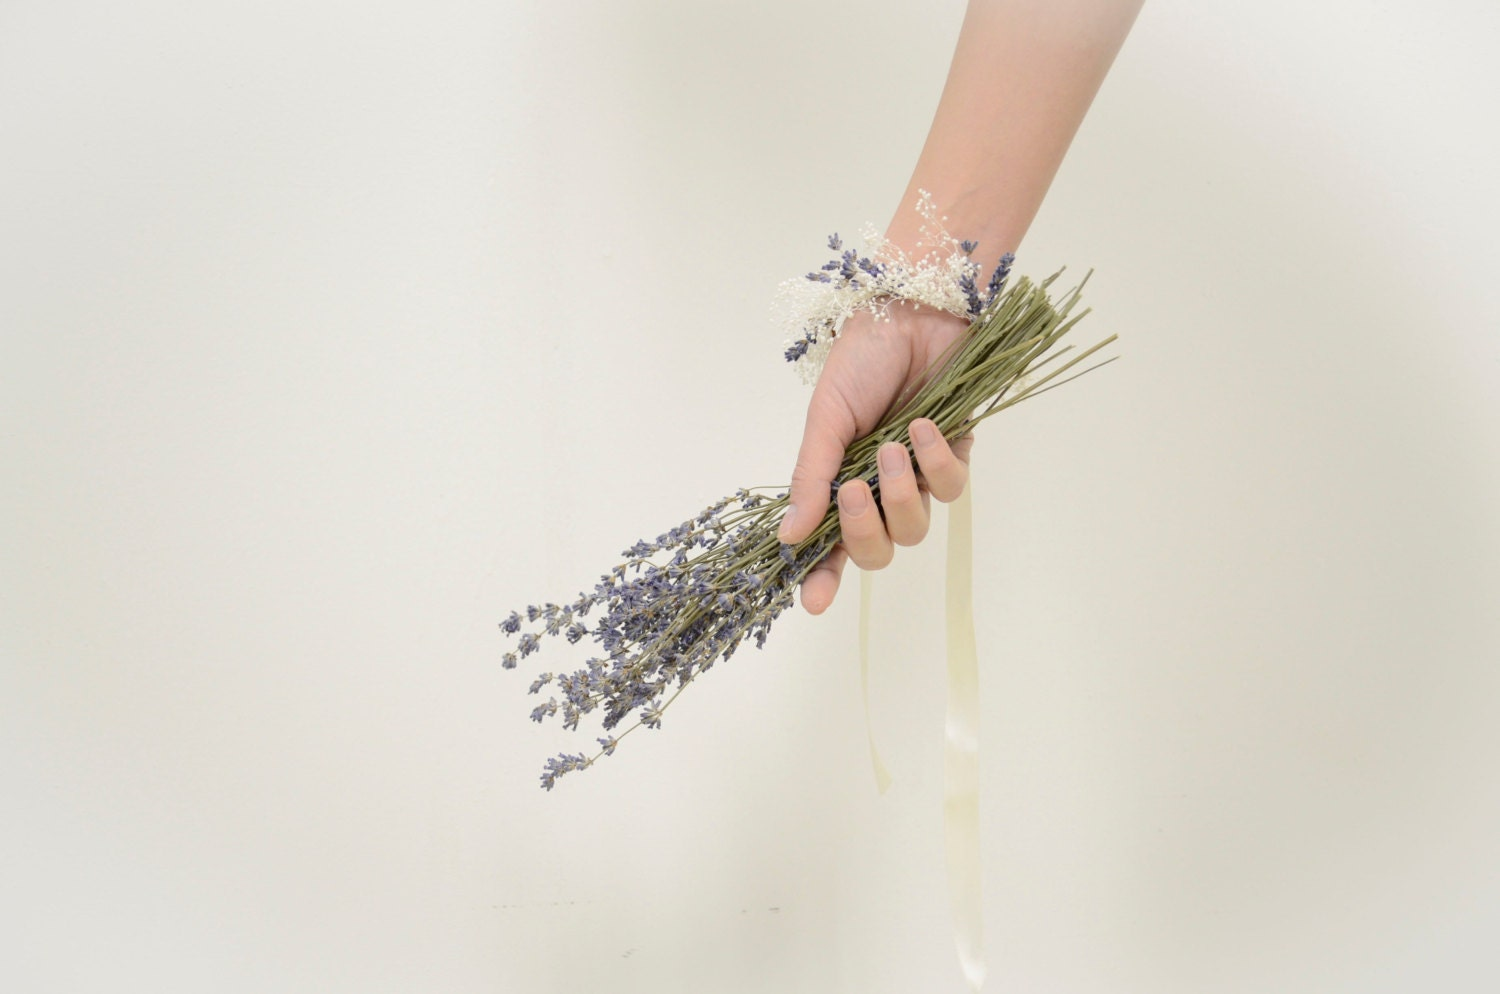 Lavender and Baby's Breath Bracelet with Natural Dried Flowers - WoodlandSecrets